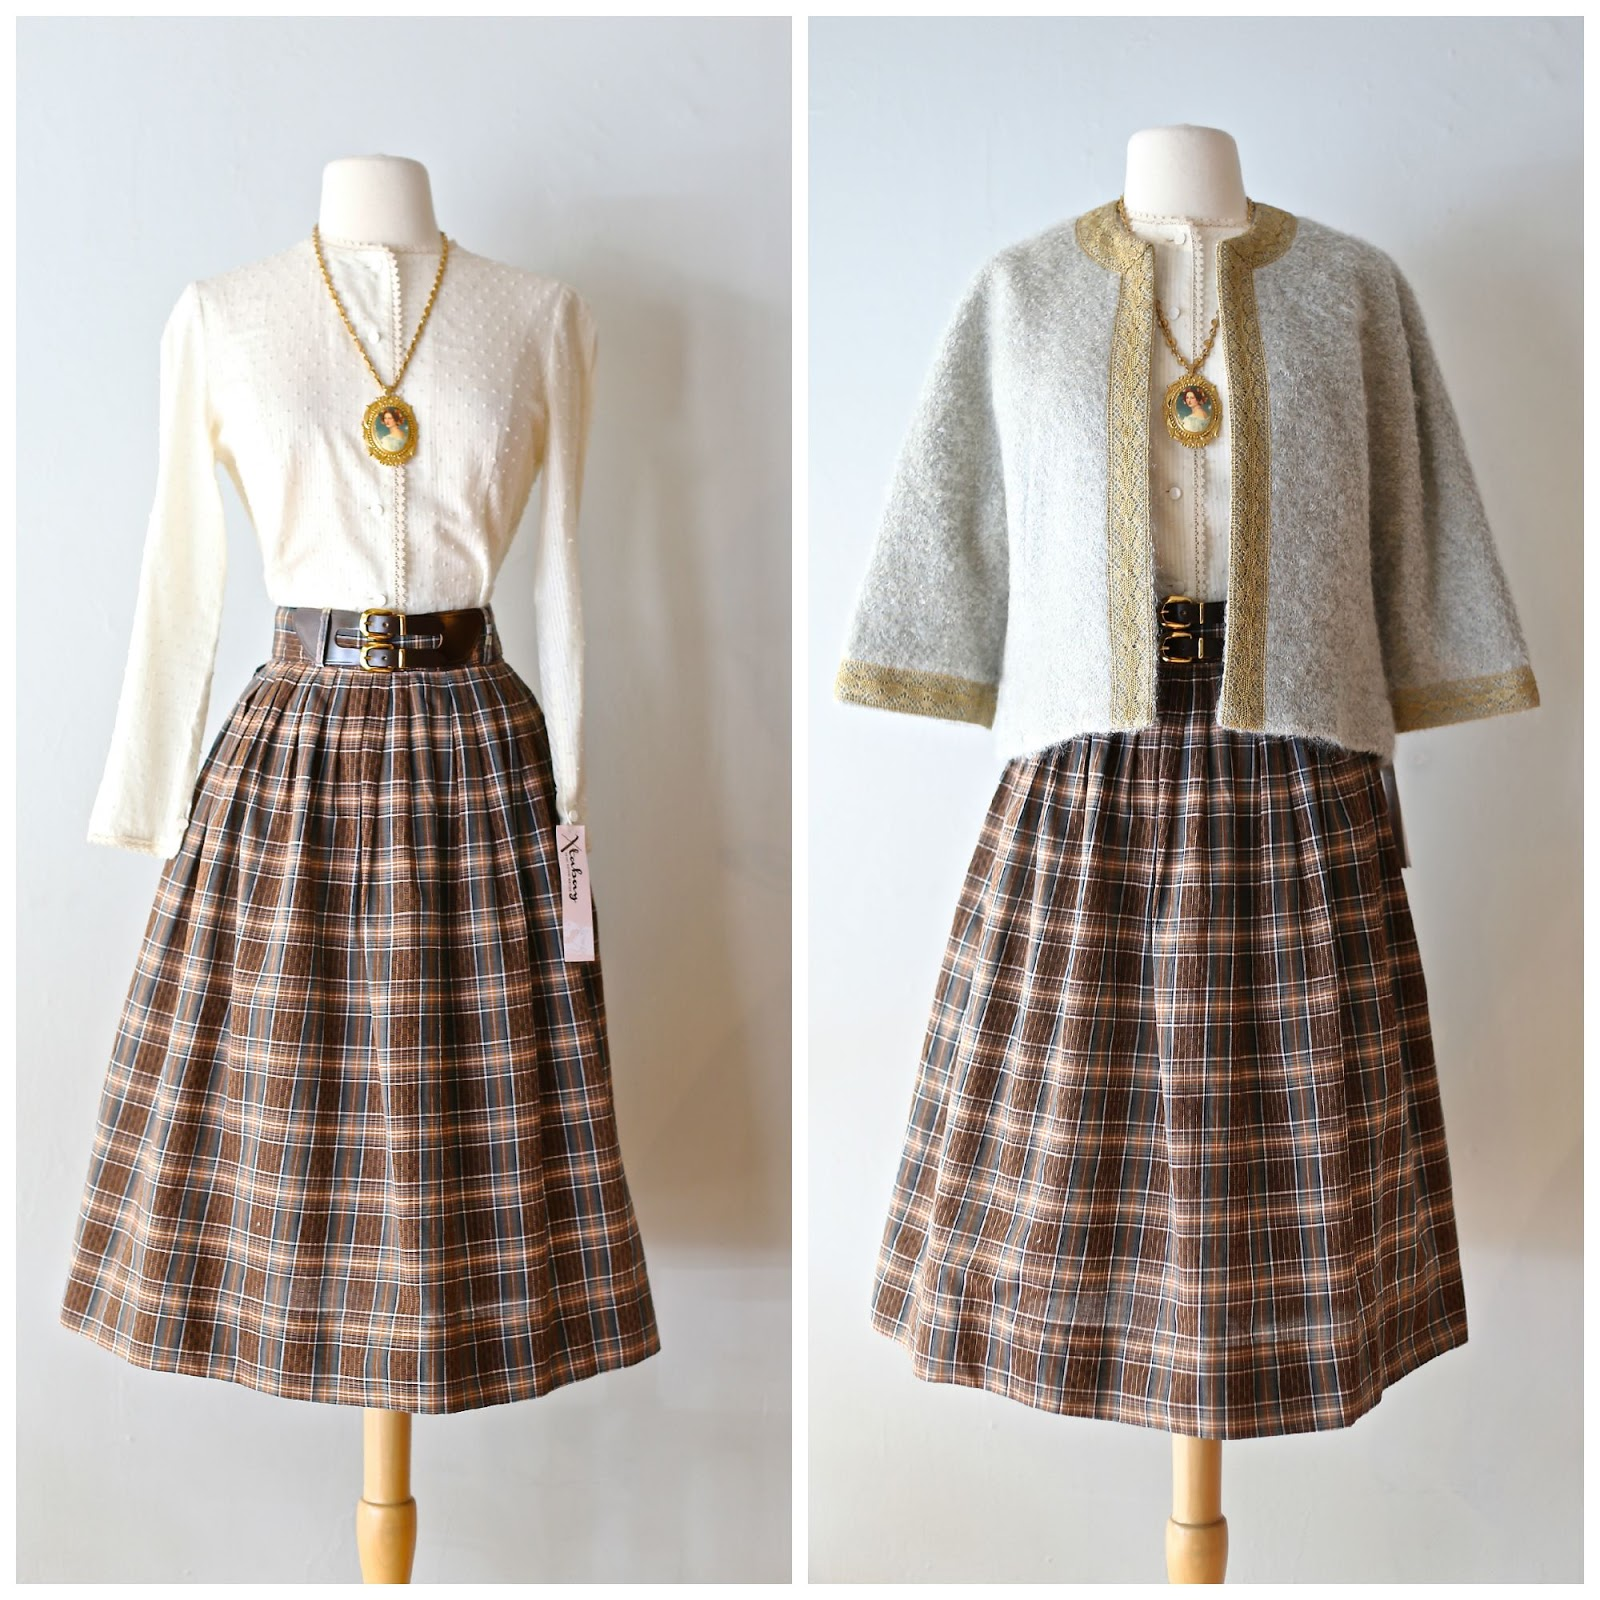 87d65d39b12b9 1950's plaid skirt paired with 50's wool boucle cardigan a vintage Miriam  Haskell cameo necklace and Xtabay blouse. All items available in our Etsy  shop.